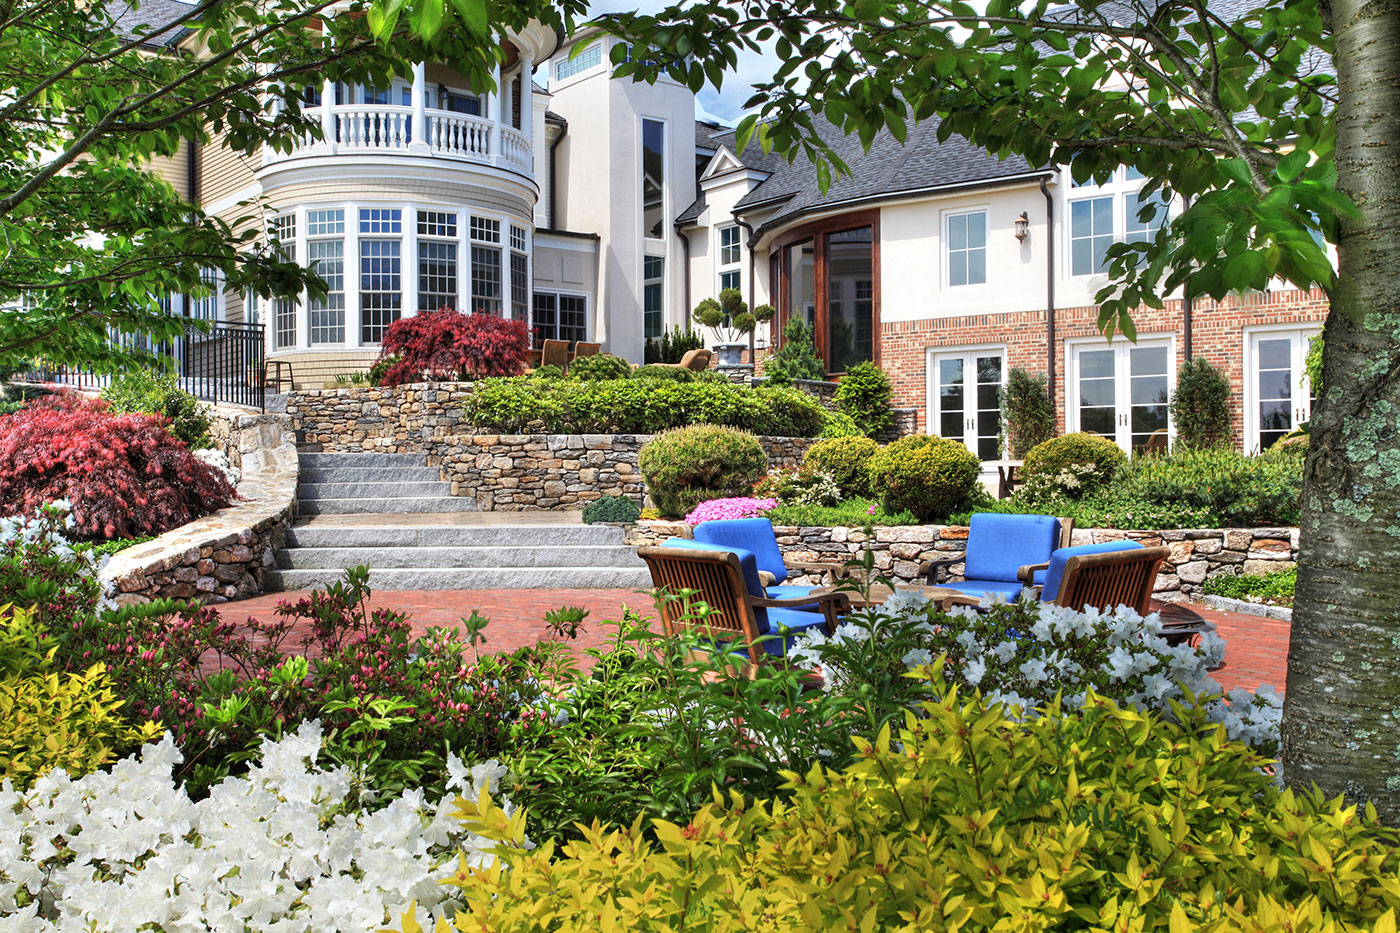 Multi-terrace landscape design by The MacDowell Company